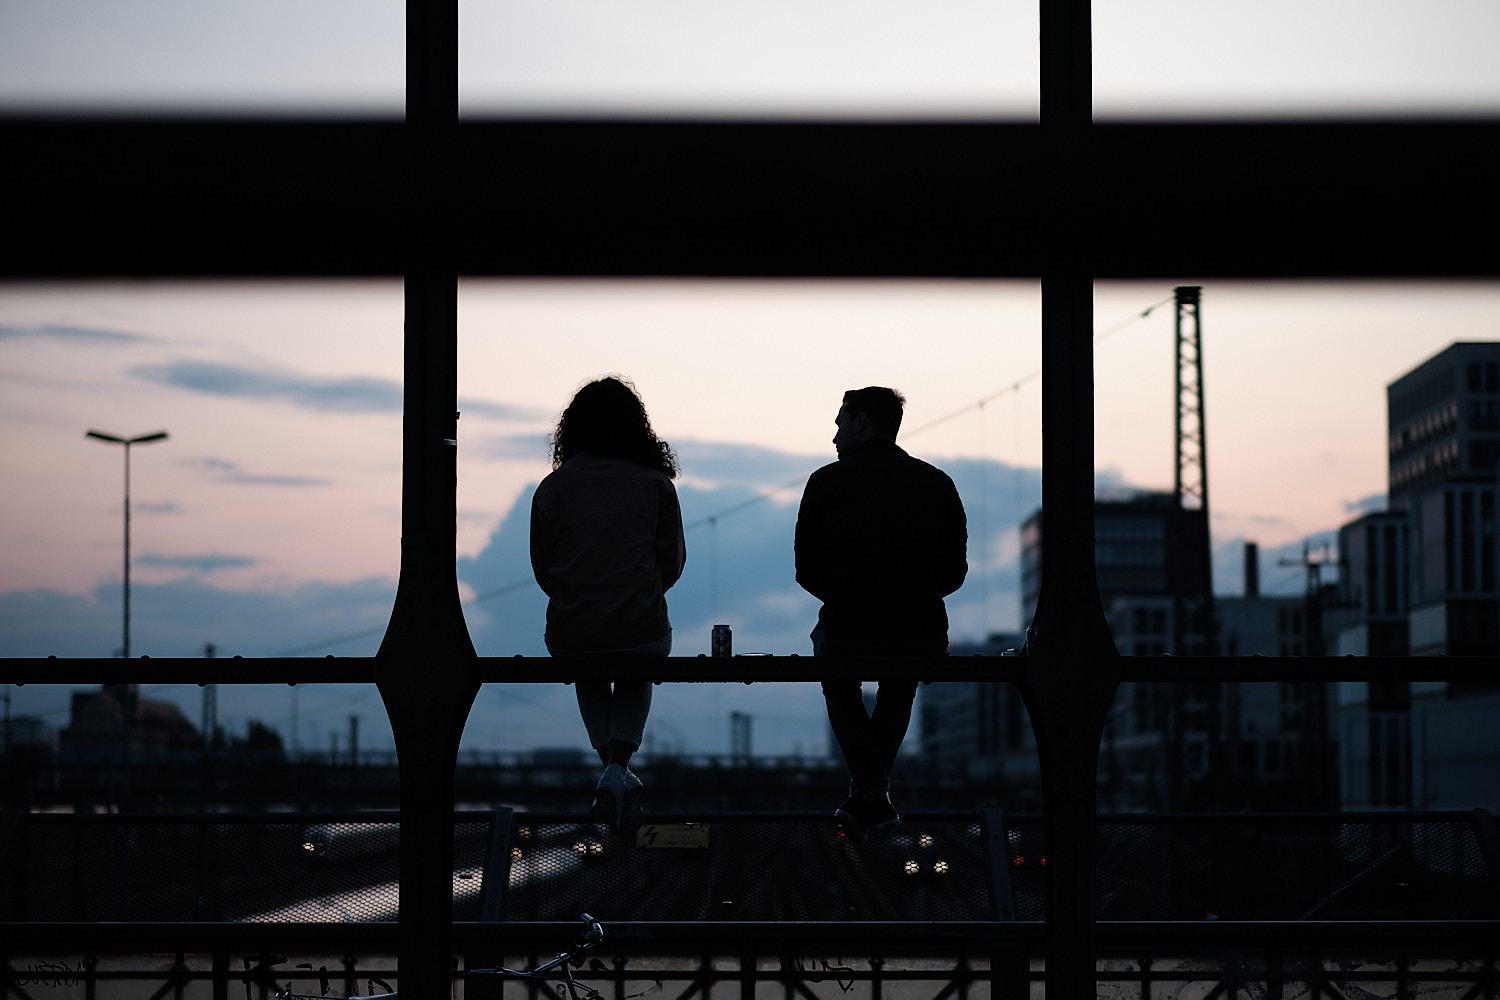 A couple chat perched over a beam at the bridge. In the background the sunset blue sky sets them as dark profiles.